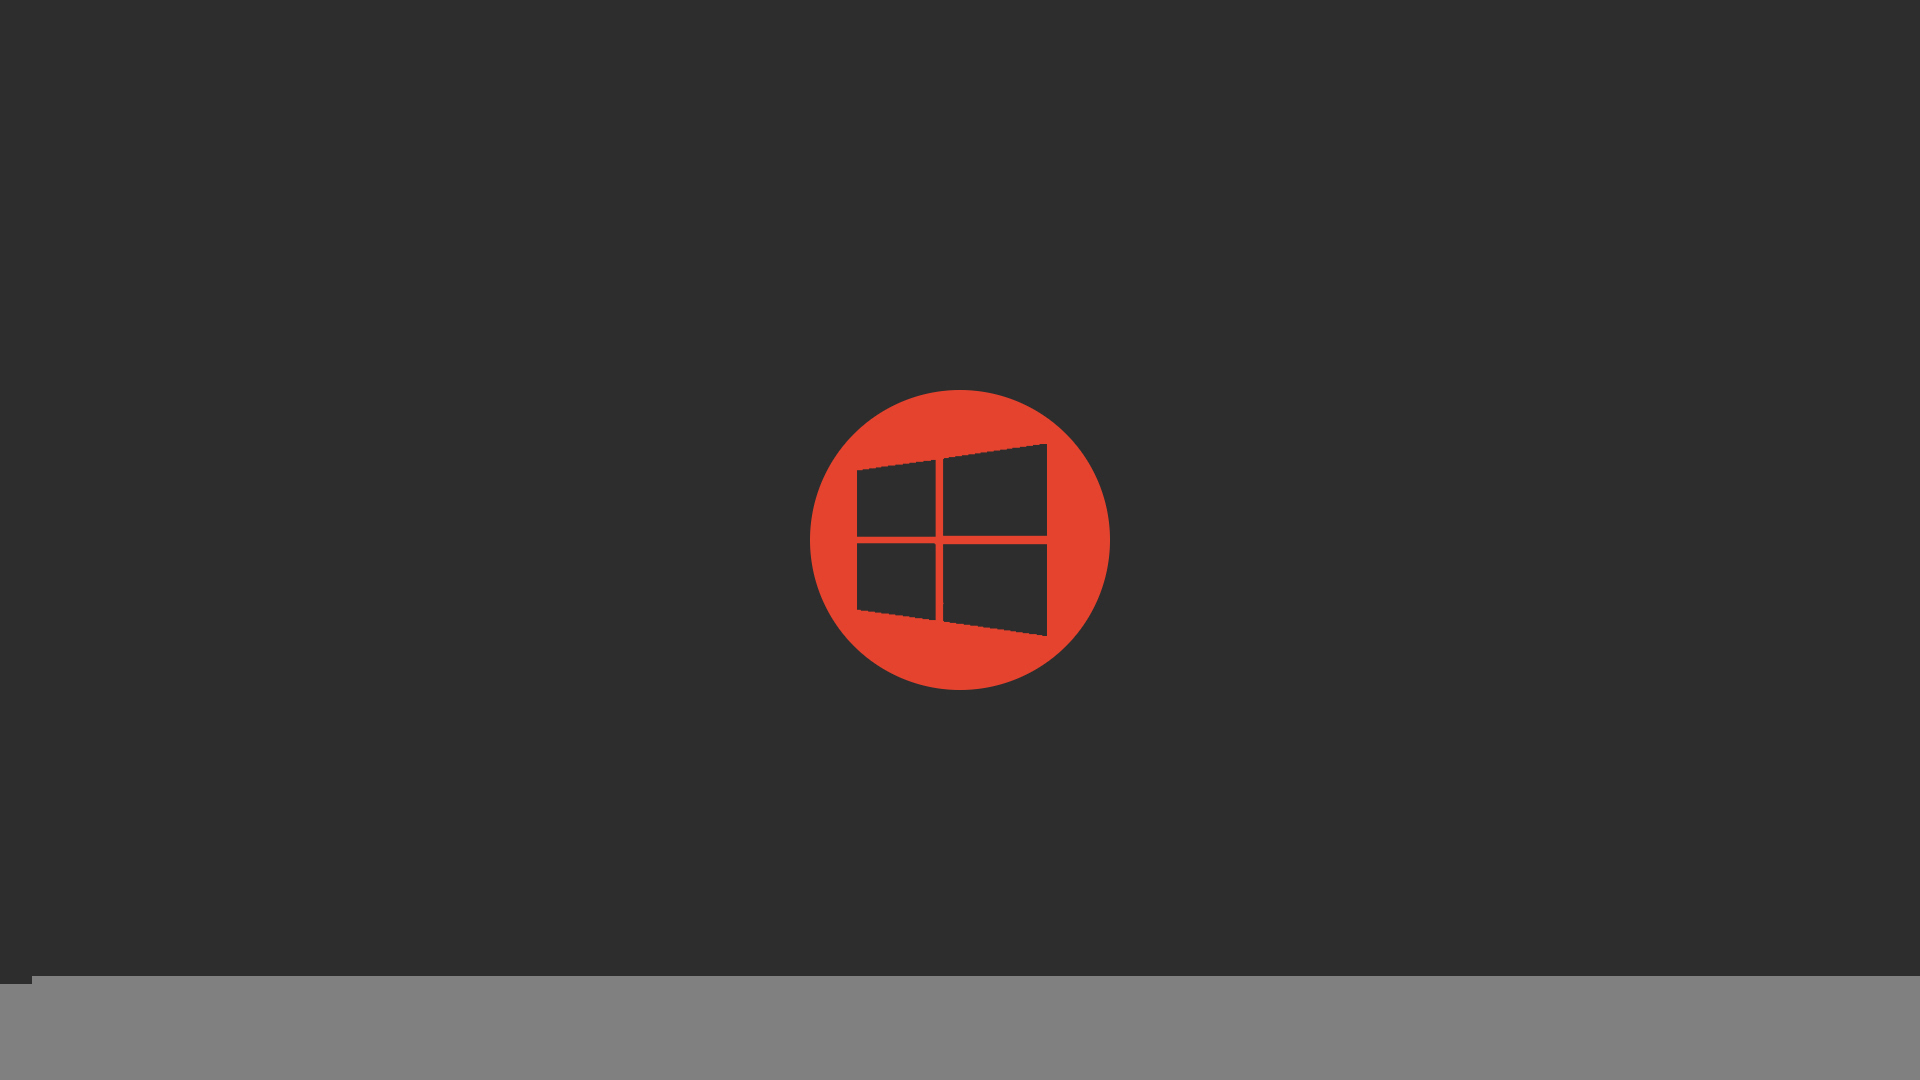 Hd Microsoft Windows 10 Logo 4k Wallpapers Windows 10